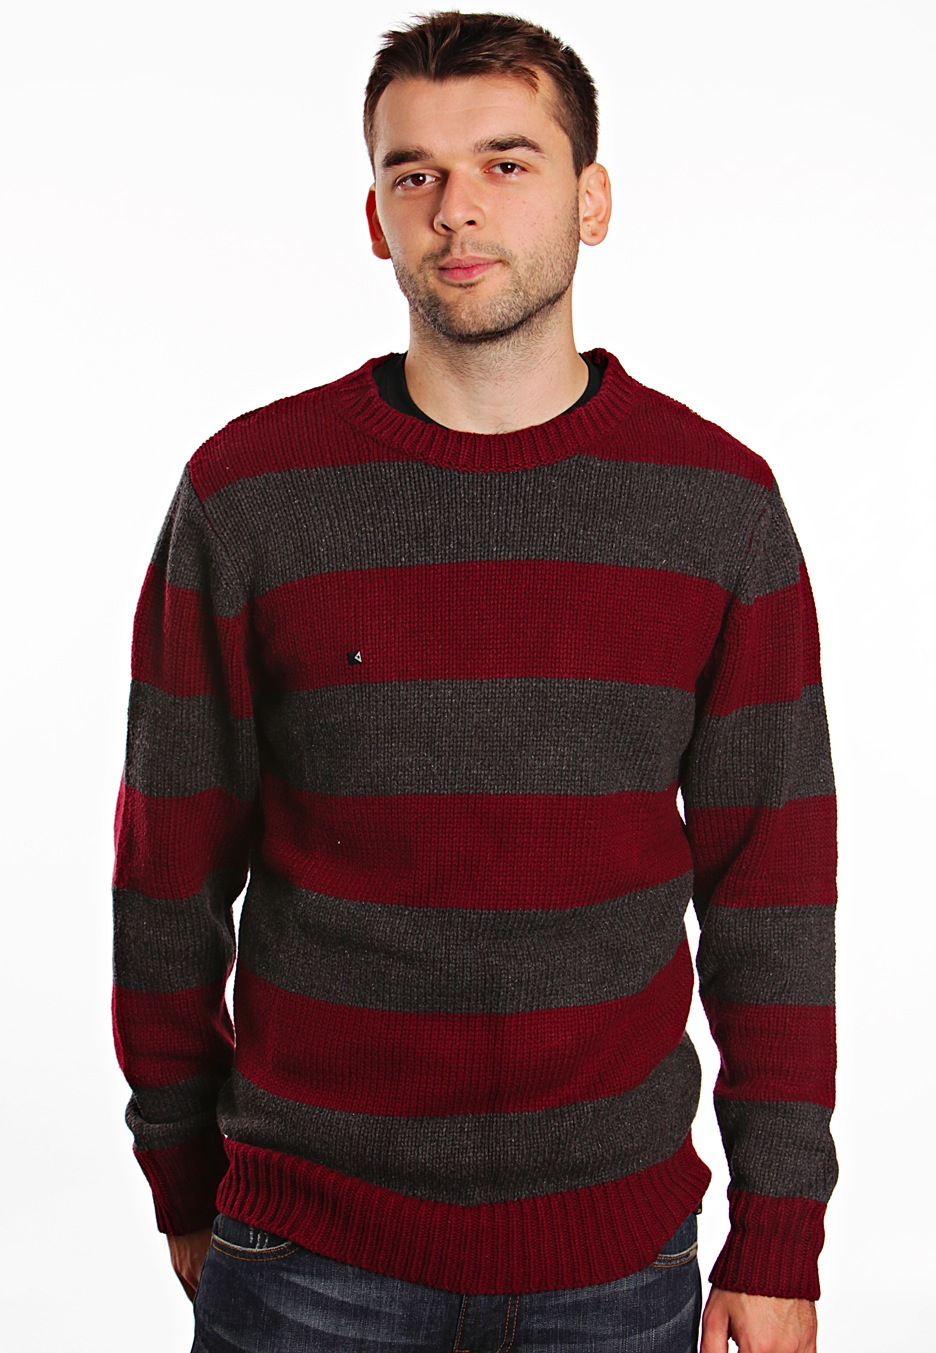 Kr3w - Norton Striped Burgundy - Sweater - Impericon.com Worldwide